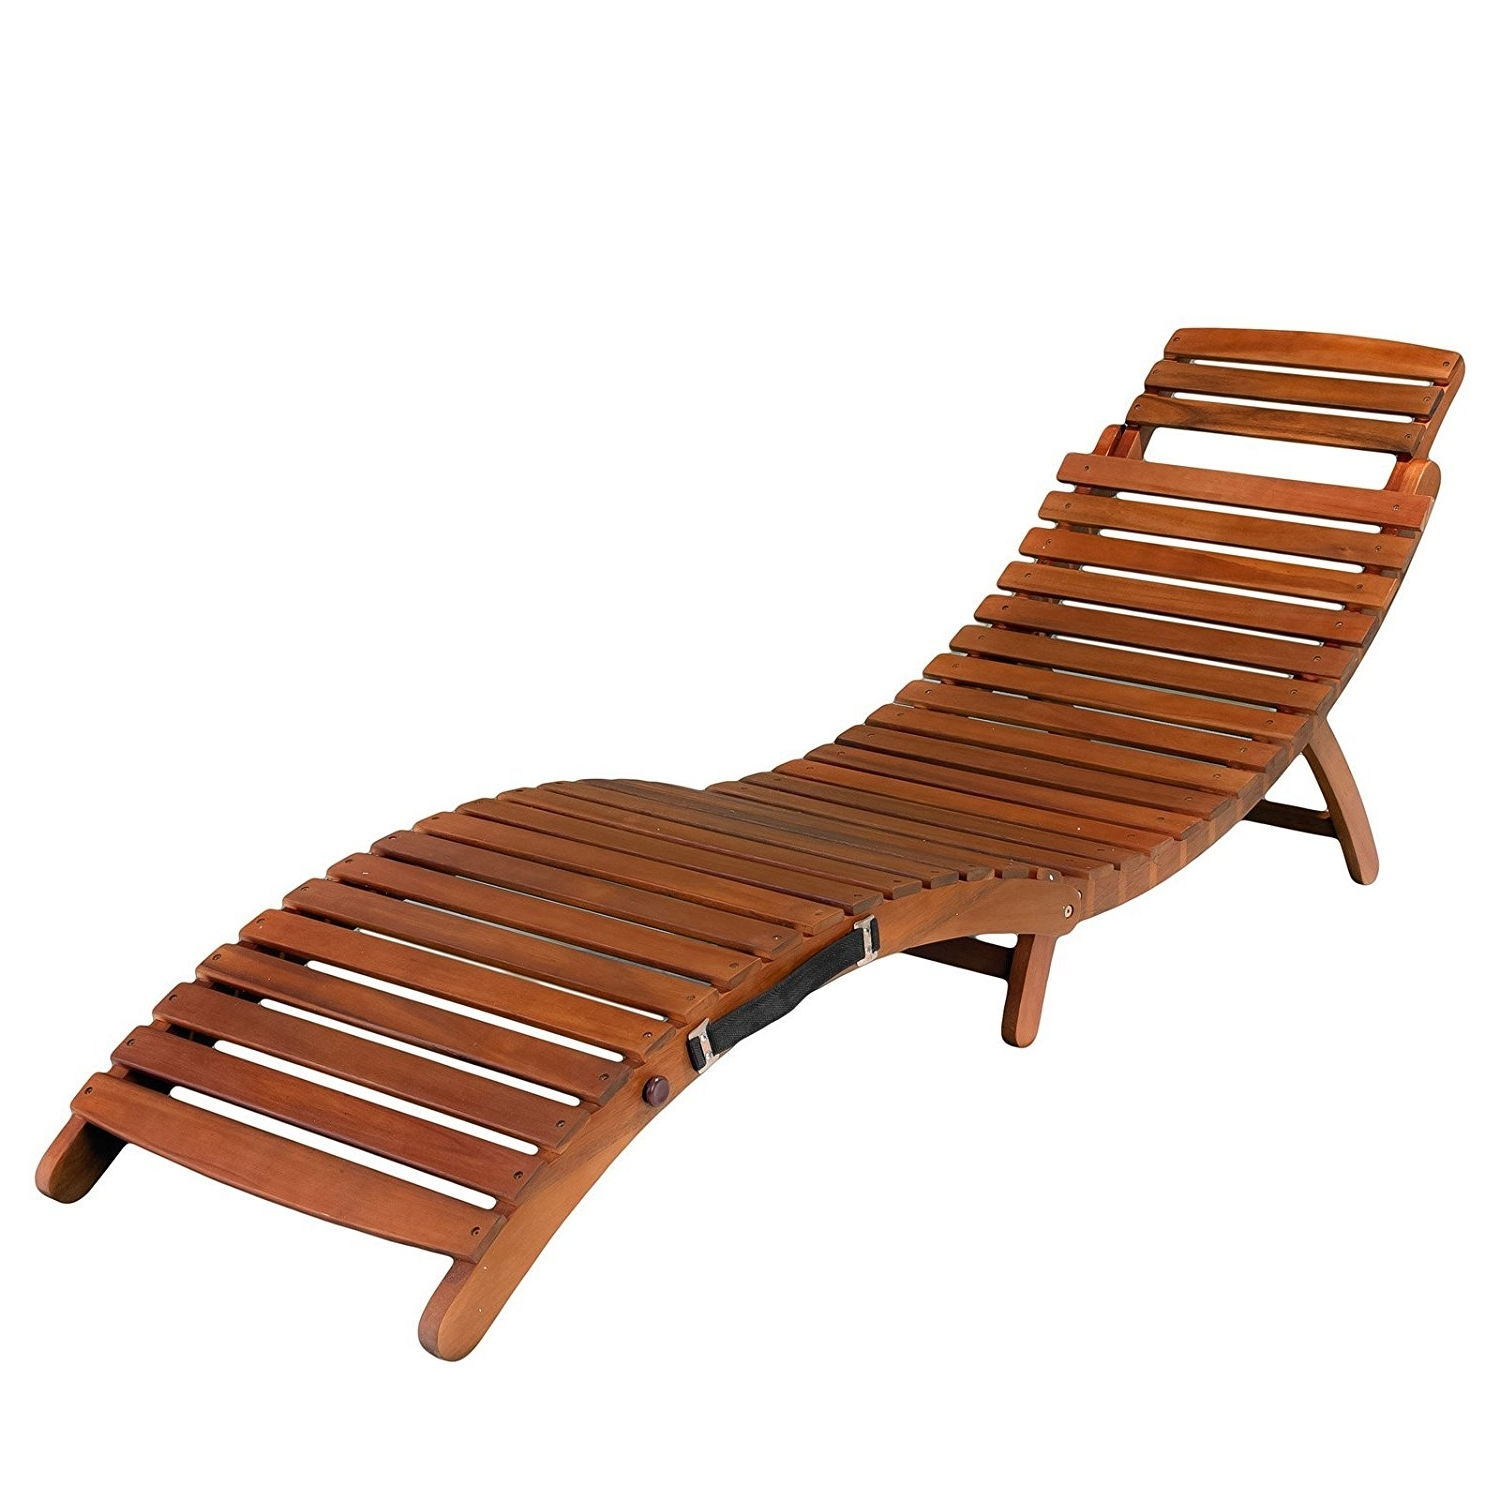 Foldable Chaise Lounges With Regard To Favorite Amazon: Lahaina Outdoor Chaise Lounge: Garden & Outdoor (View 5 of 15)